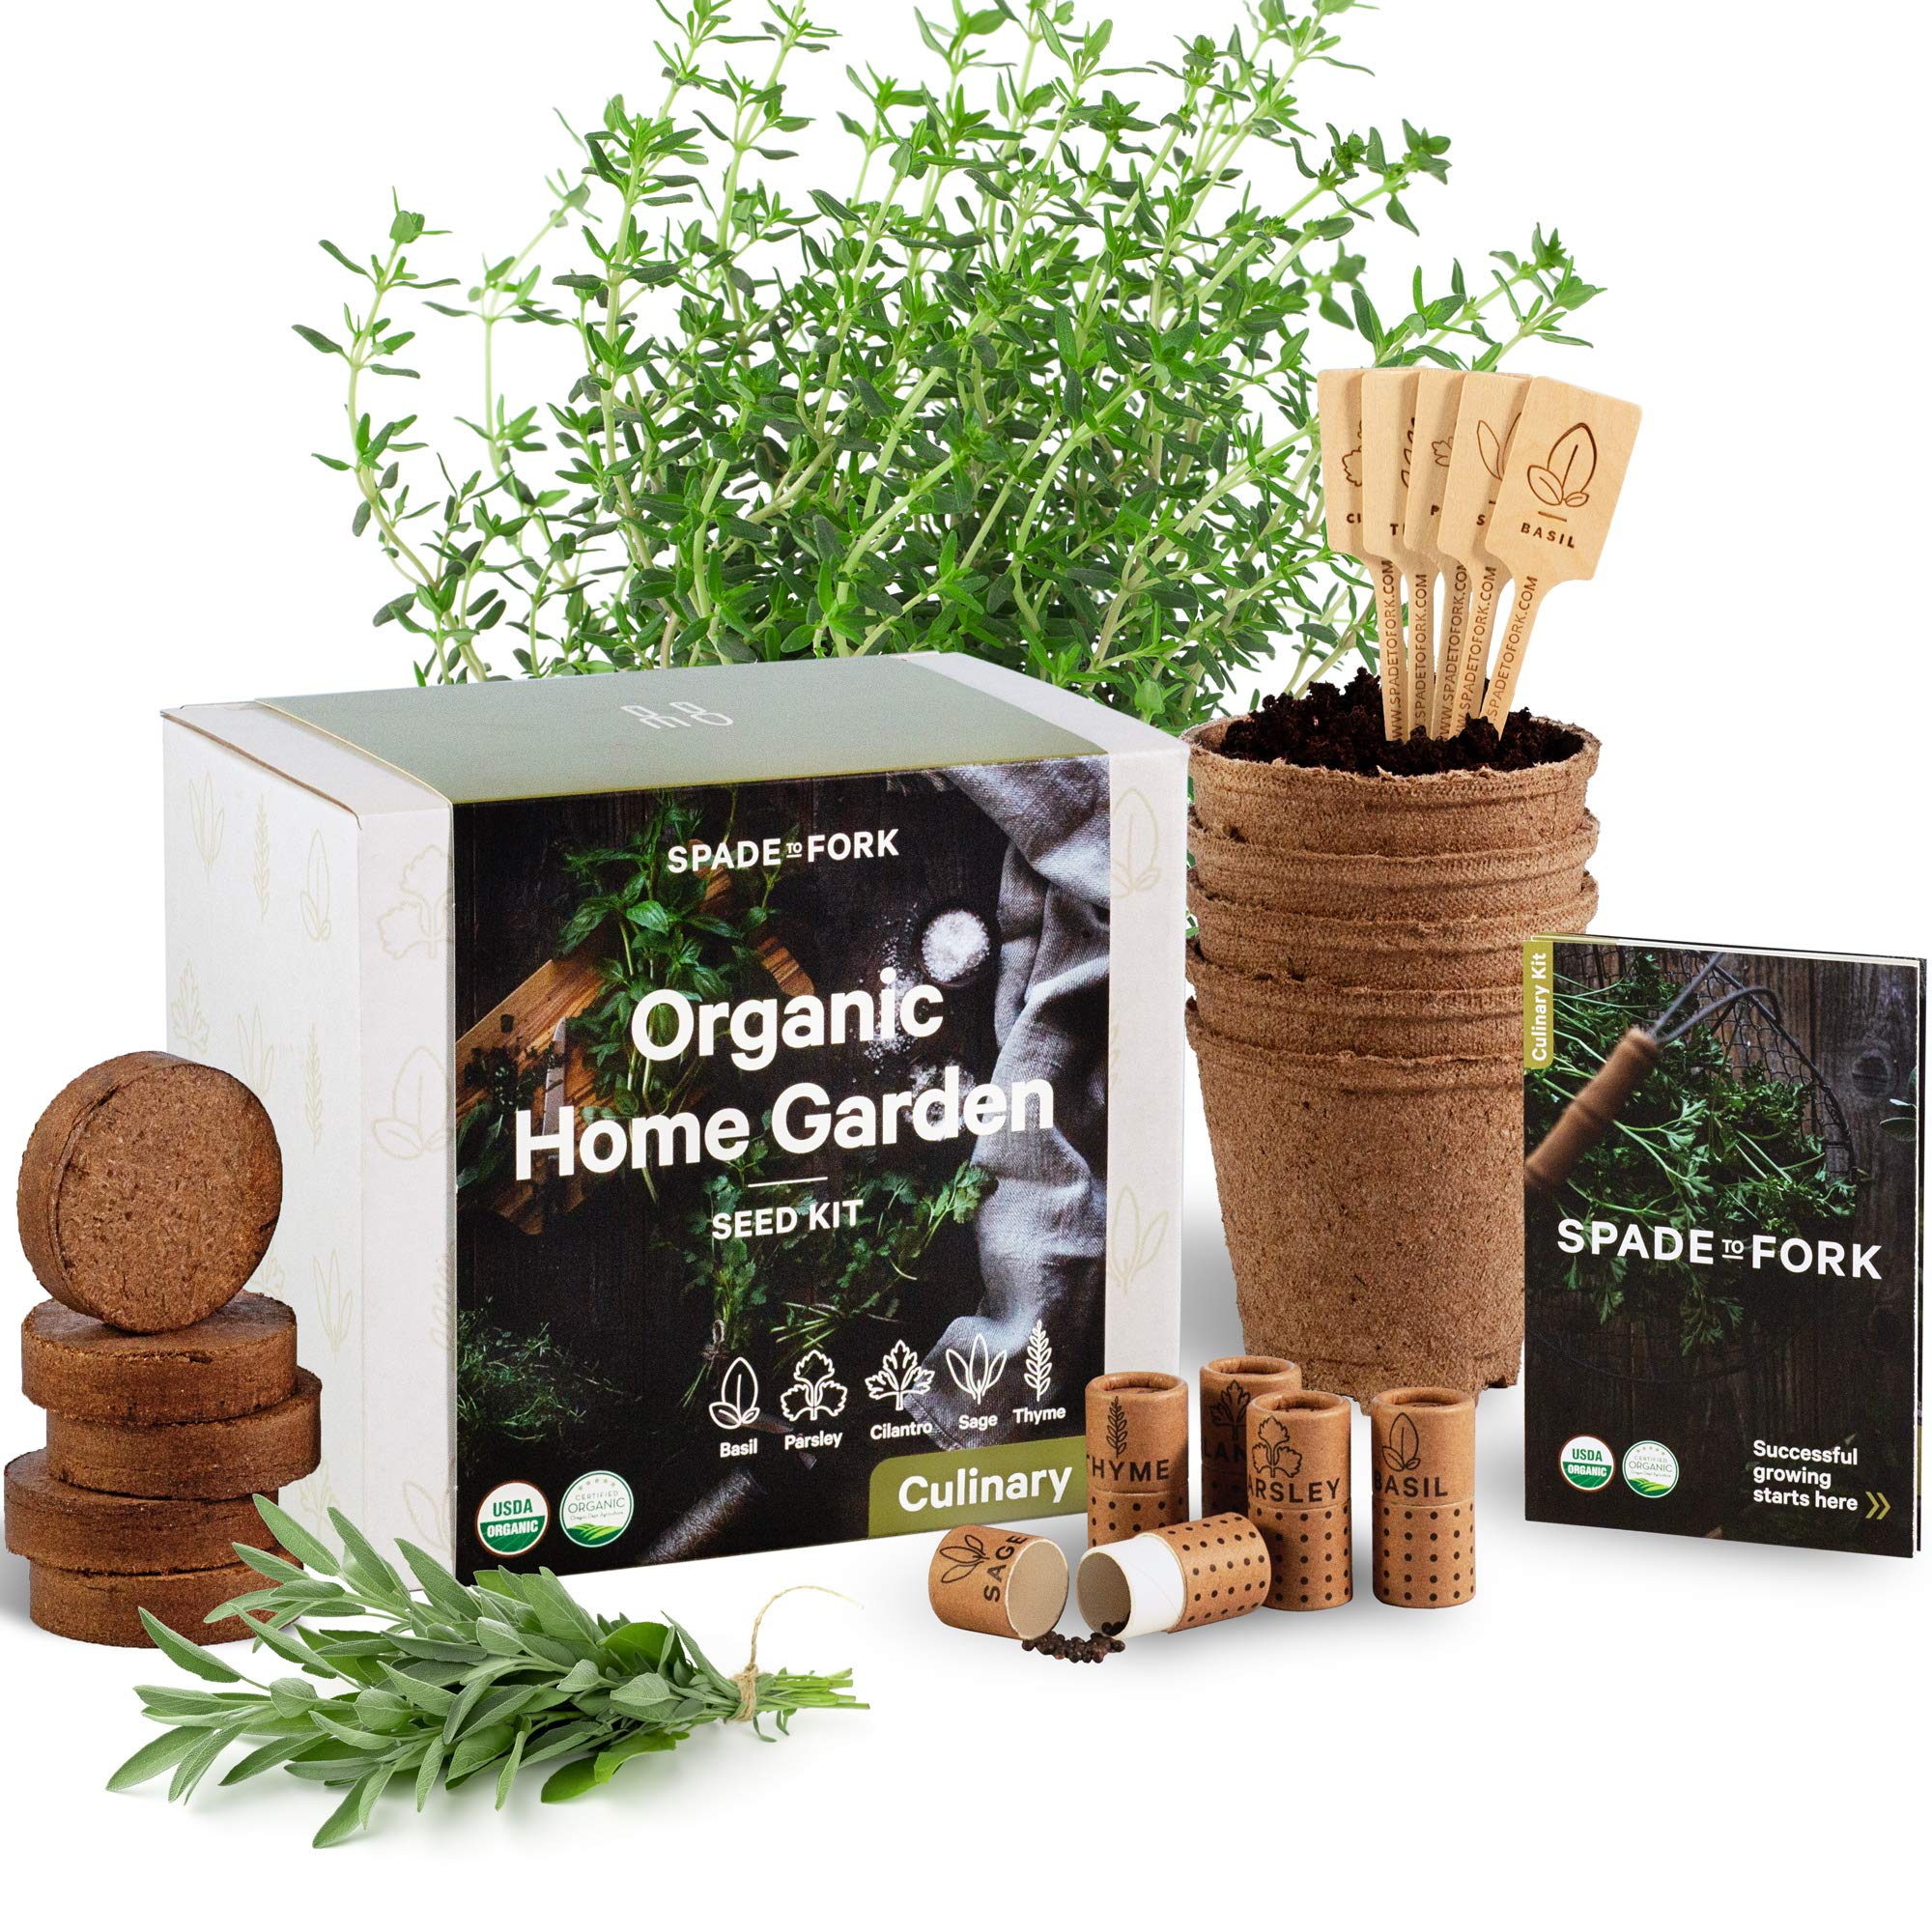 Indoor Herb Garden Starter Kit - Certified 100% USDA Organic Non GMO - Potting Soil, Peat Pots, 5 Herb Seed Basil, Cilantro, Parsley, Sage, Thyme - DIY Kitchen Grow Kit for Growing Herb Seeds Indoors by Spade To Fork (Image #1)